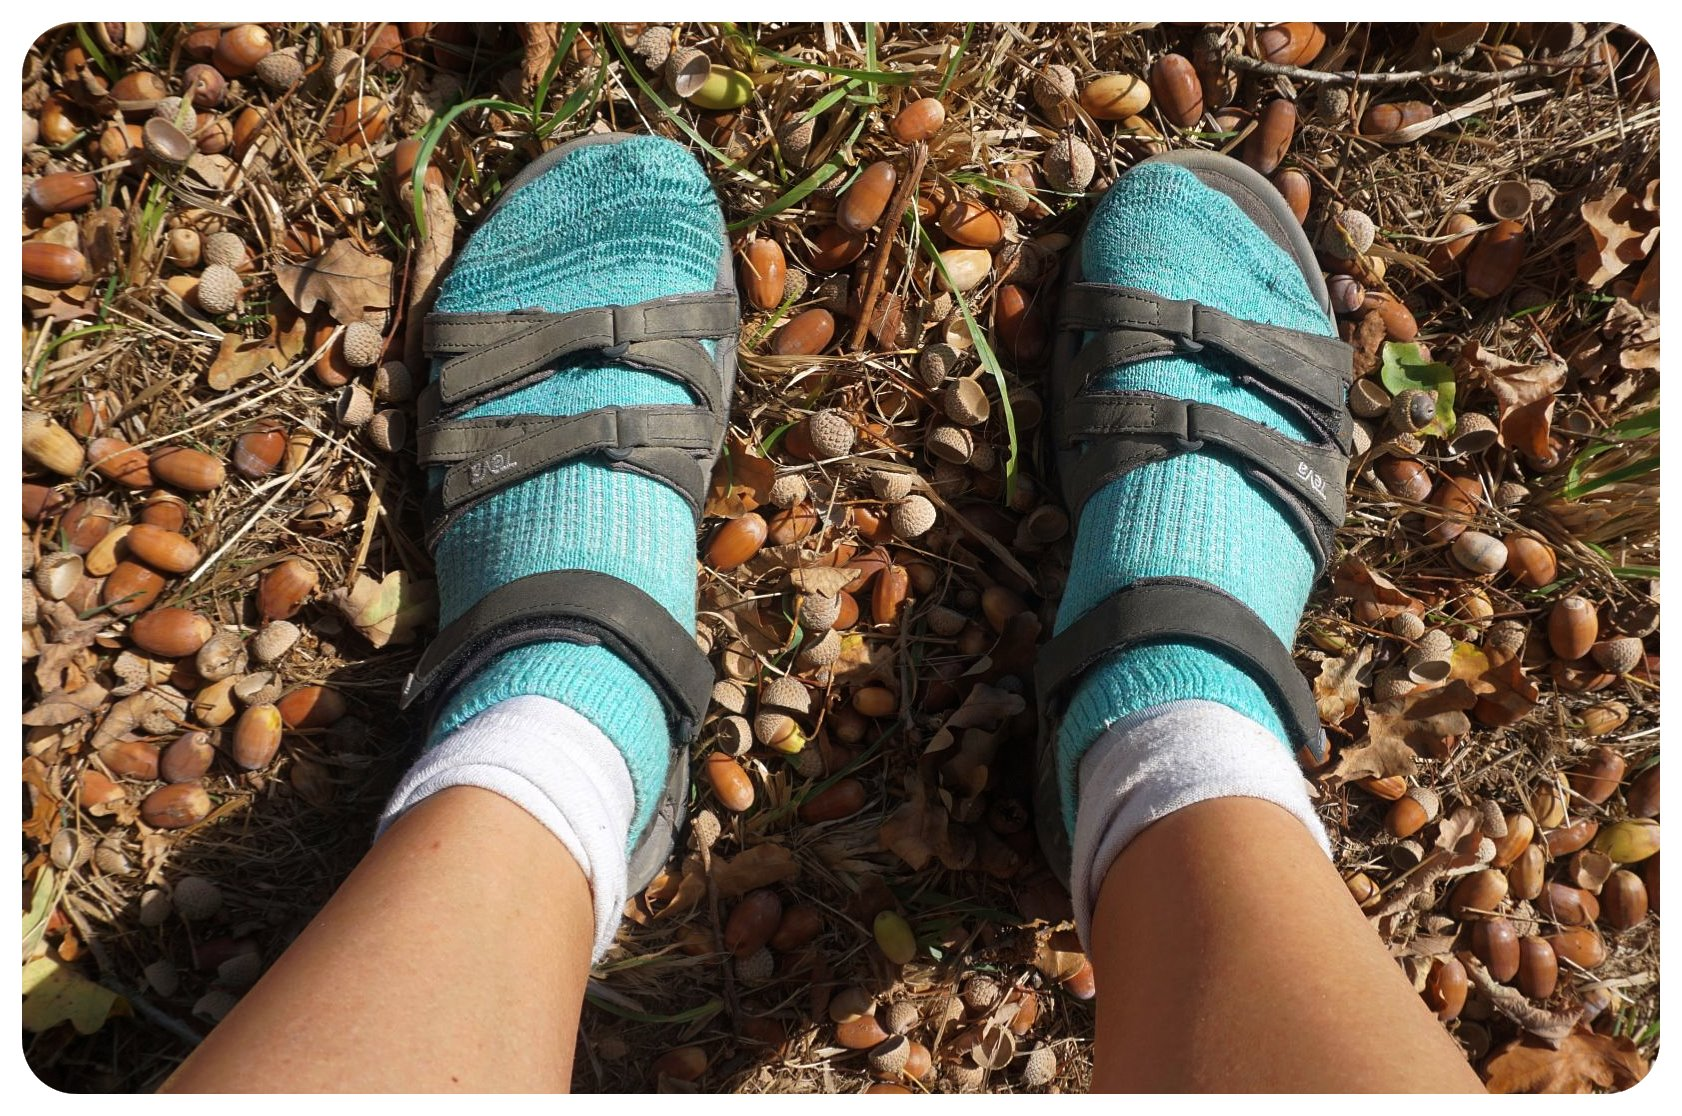 camino de santiago hiking sandals